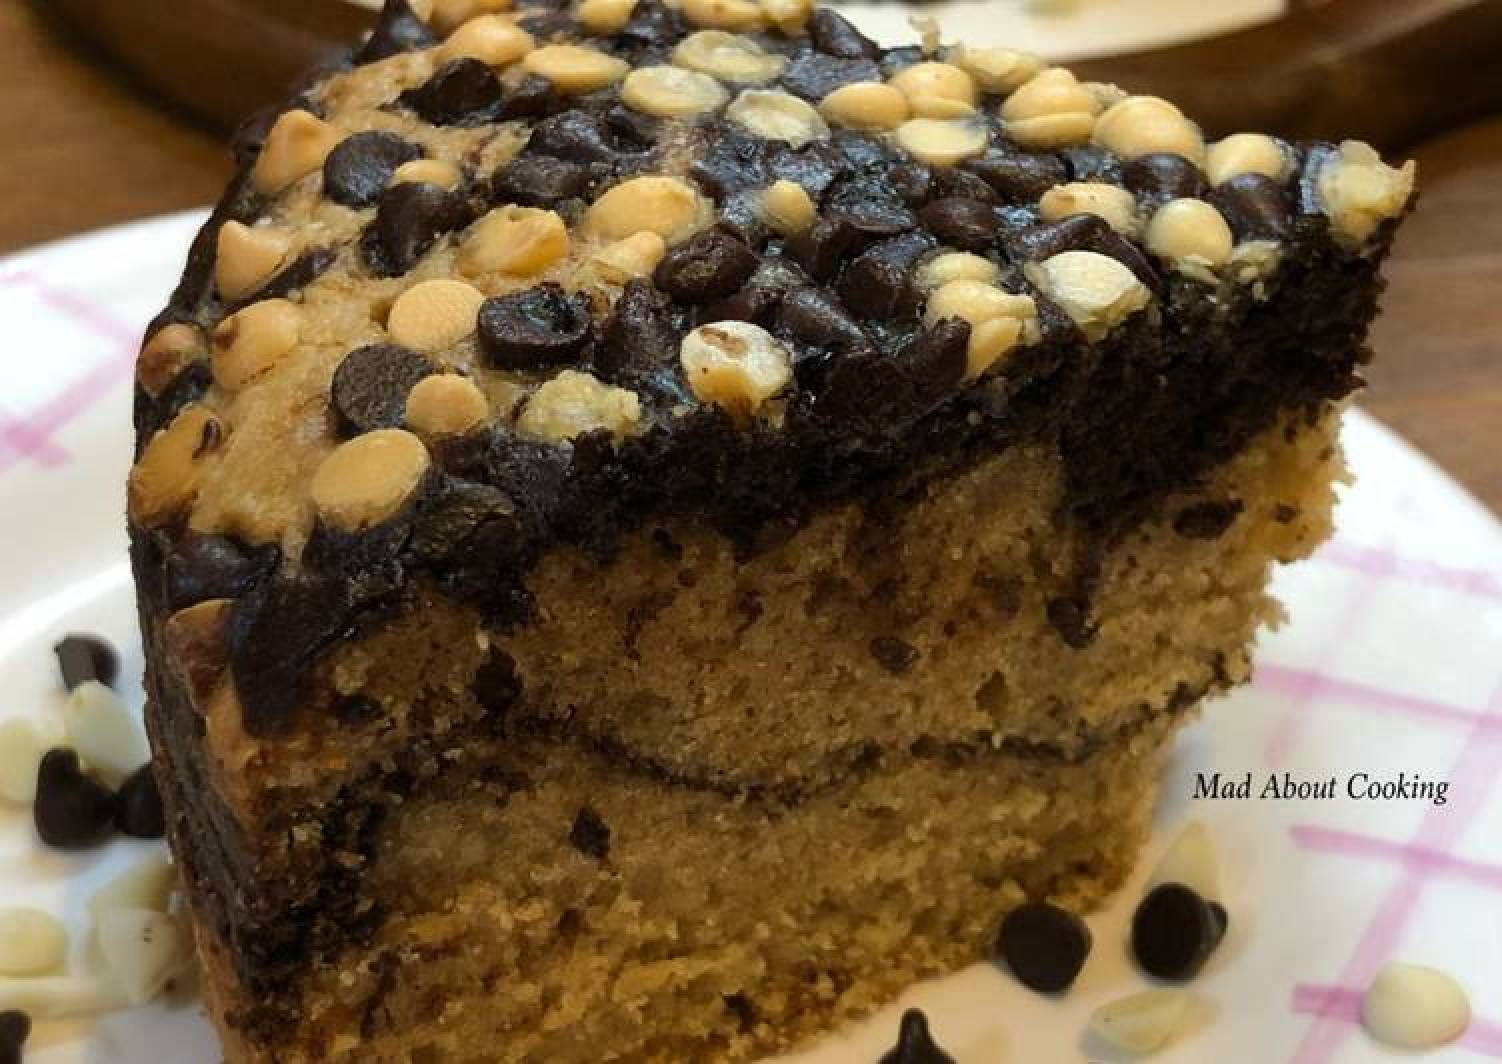 Whole Wheat Choco Marble Cake – No Egg, No Butter, No All Purpose Flour